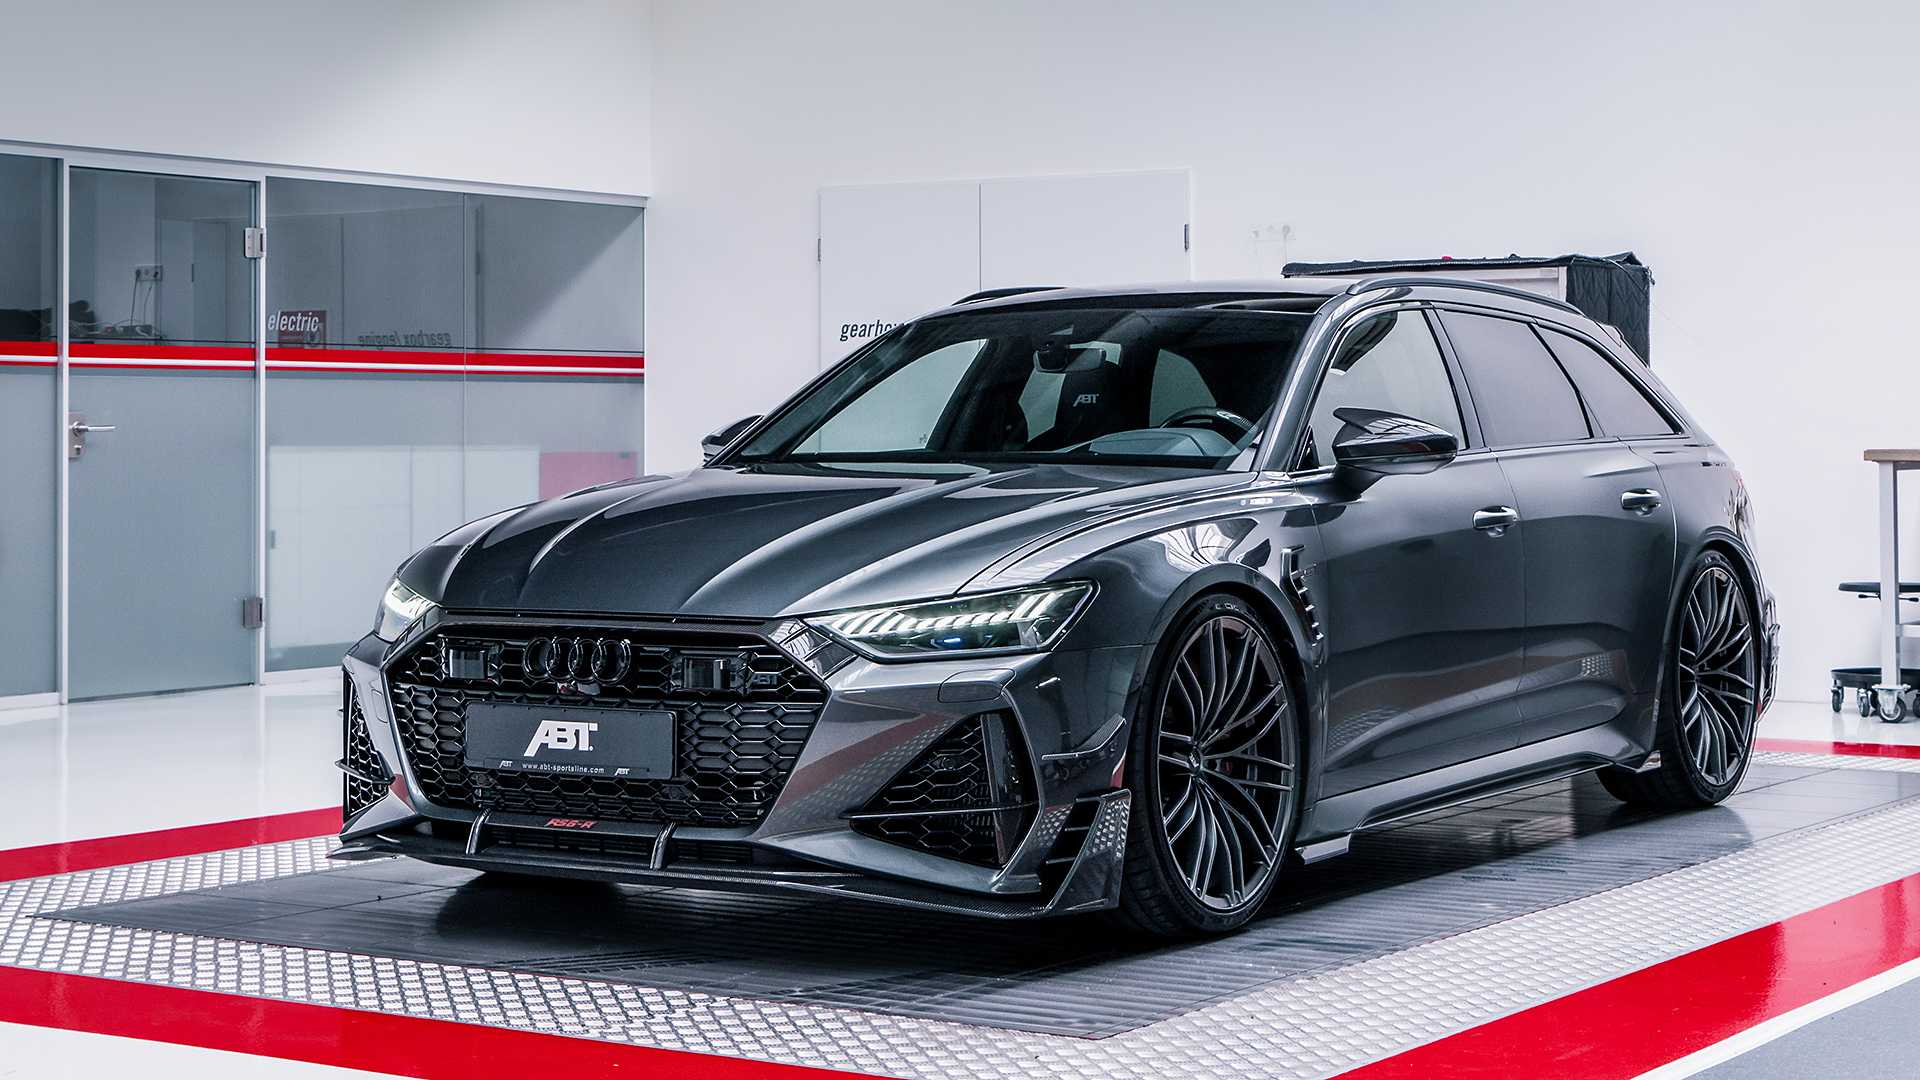 German Tuner S Audi Rs6 Avant Loves Its Aftermarket Gains Autoevolution